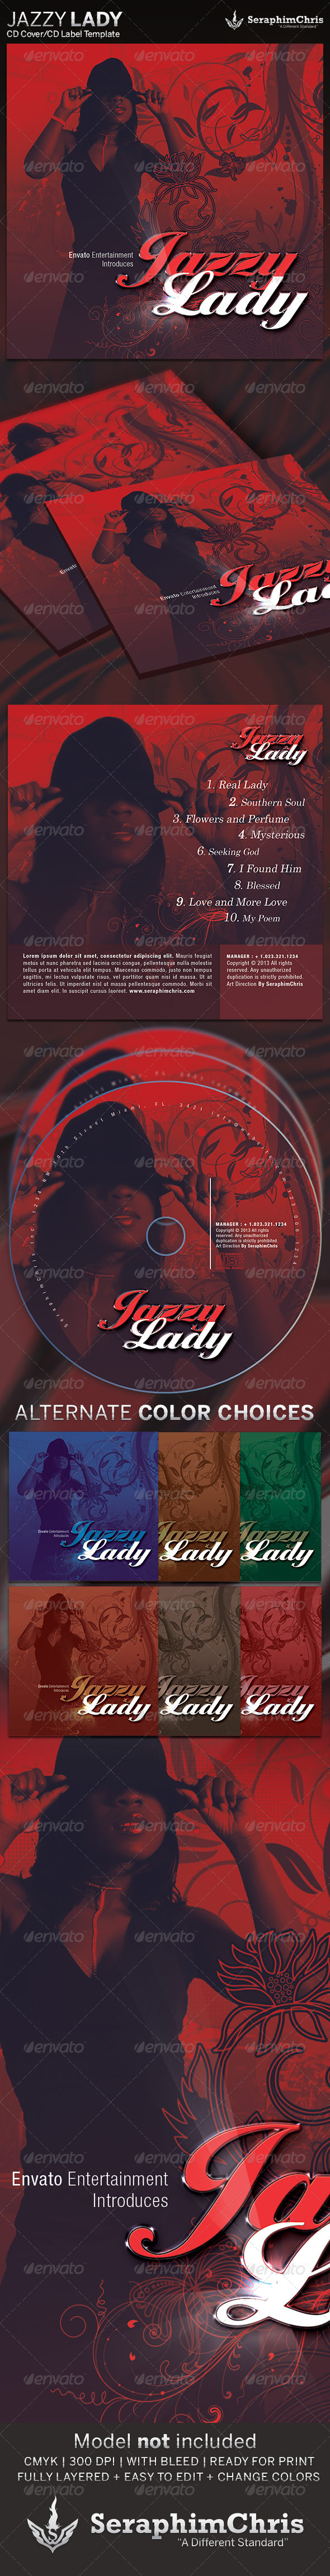 Jazzy Lady: CD Cover Artwork Template - CD & DVD Artwork Print Templates